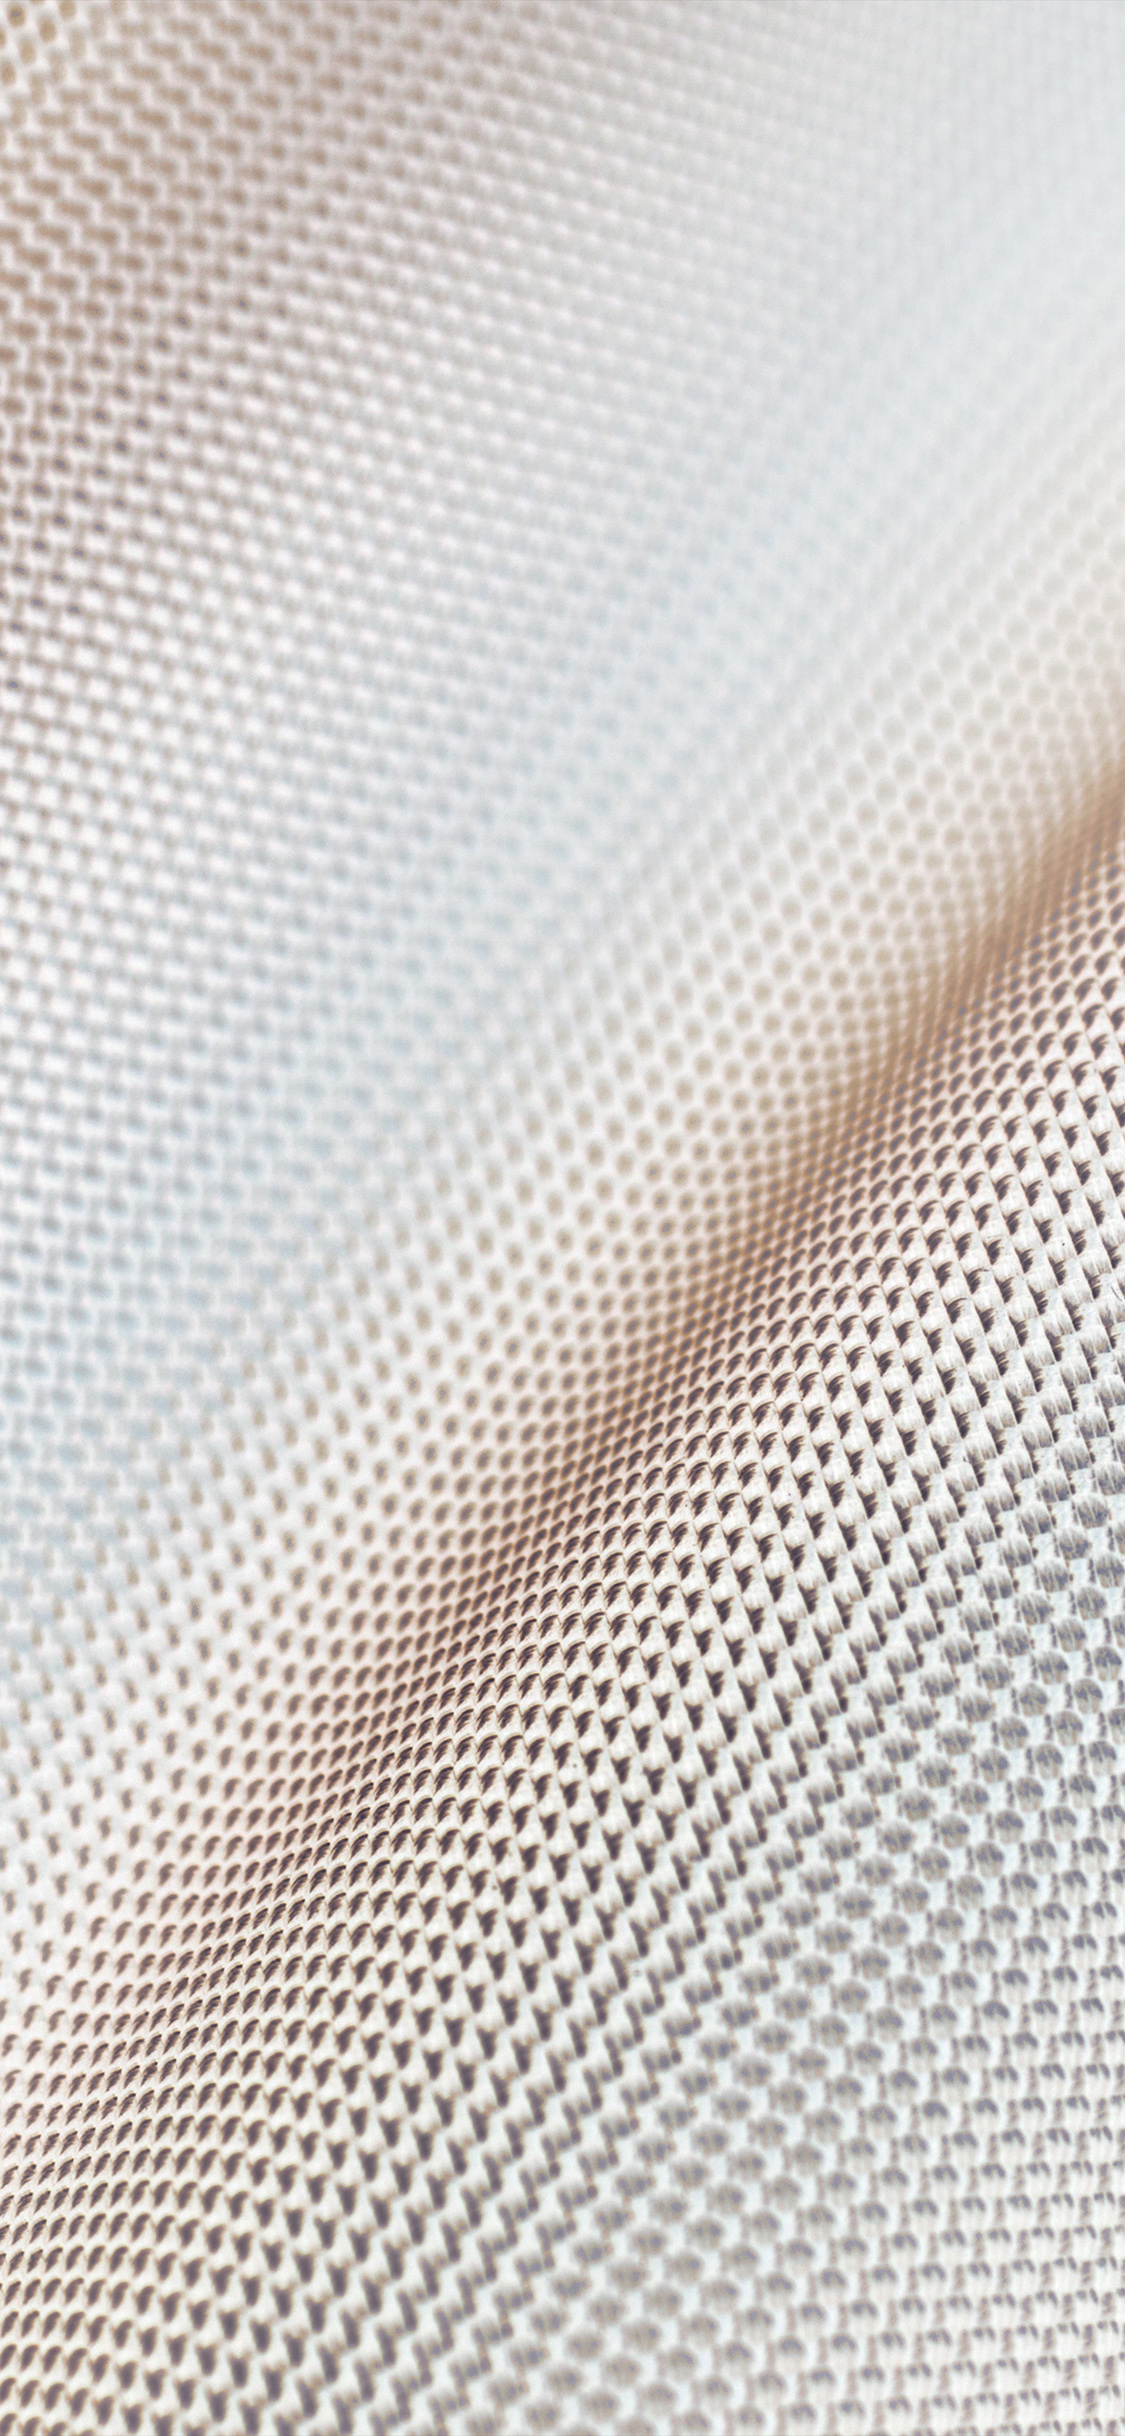 iPhoneXpapers.com-Apple-iPhone-wallpaper-vl27-texture-dots-samsung-galaxy-white-pattern